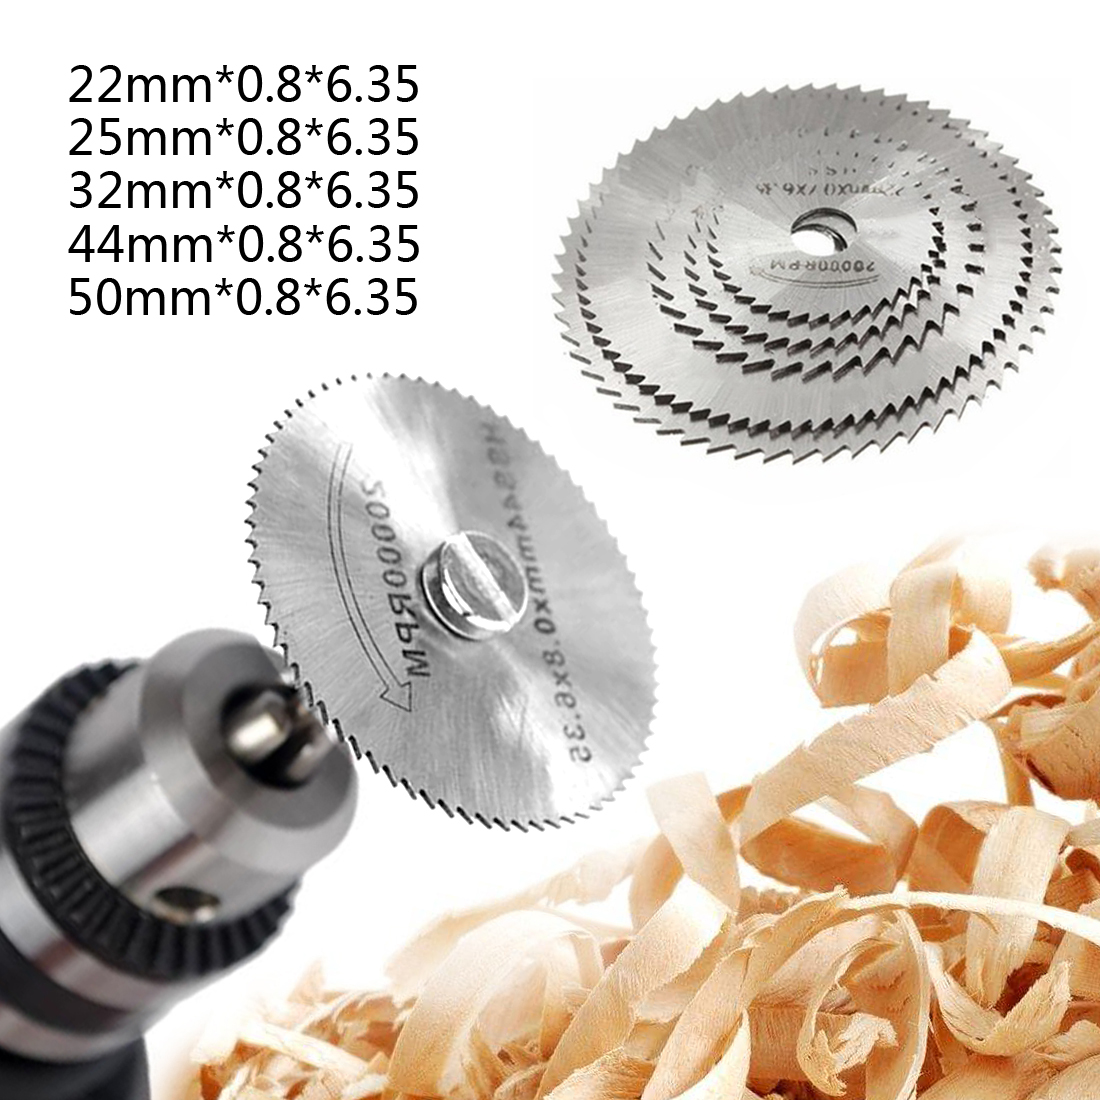 22-50mm Mini HSS Circular Saw Blade Jig Saw Rotary Tool For Dremel Metal Cutter Power Tool Set Wood Cutting Discs Drill Mandrel